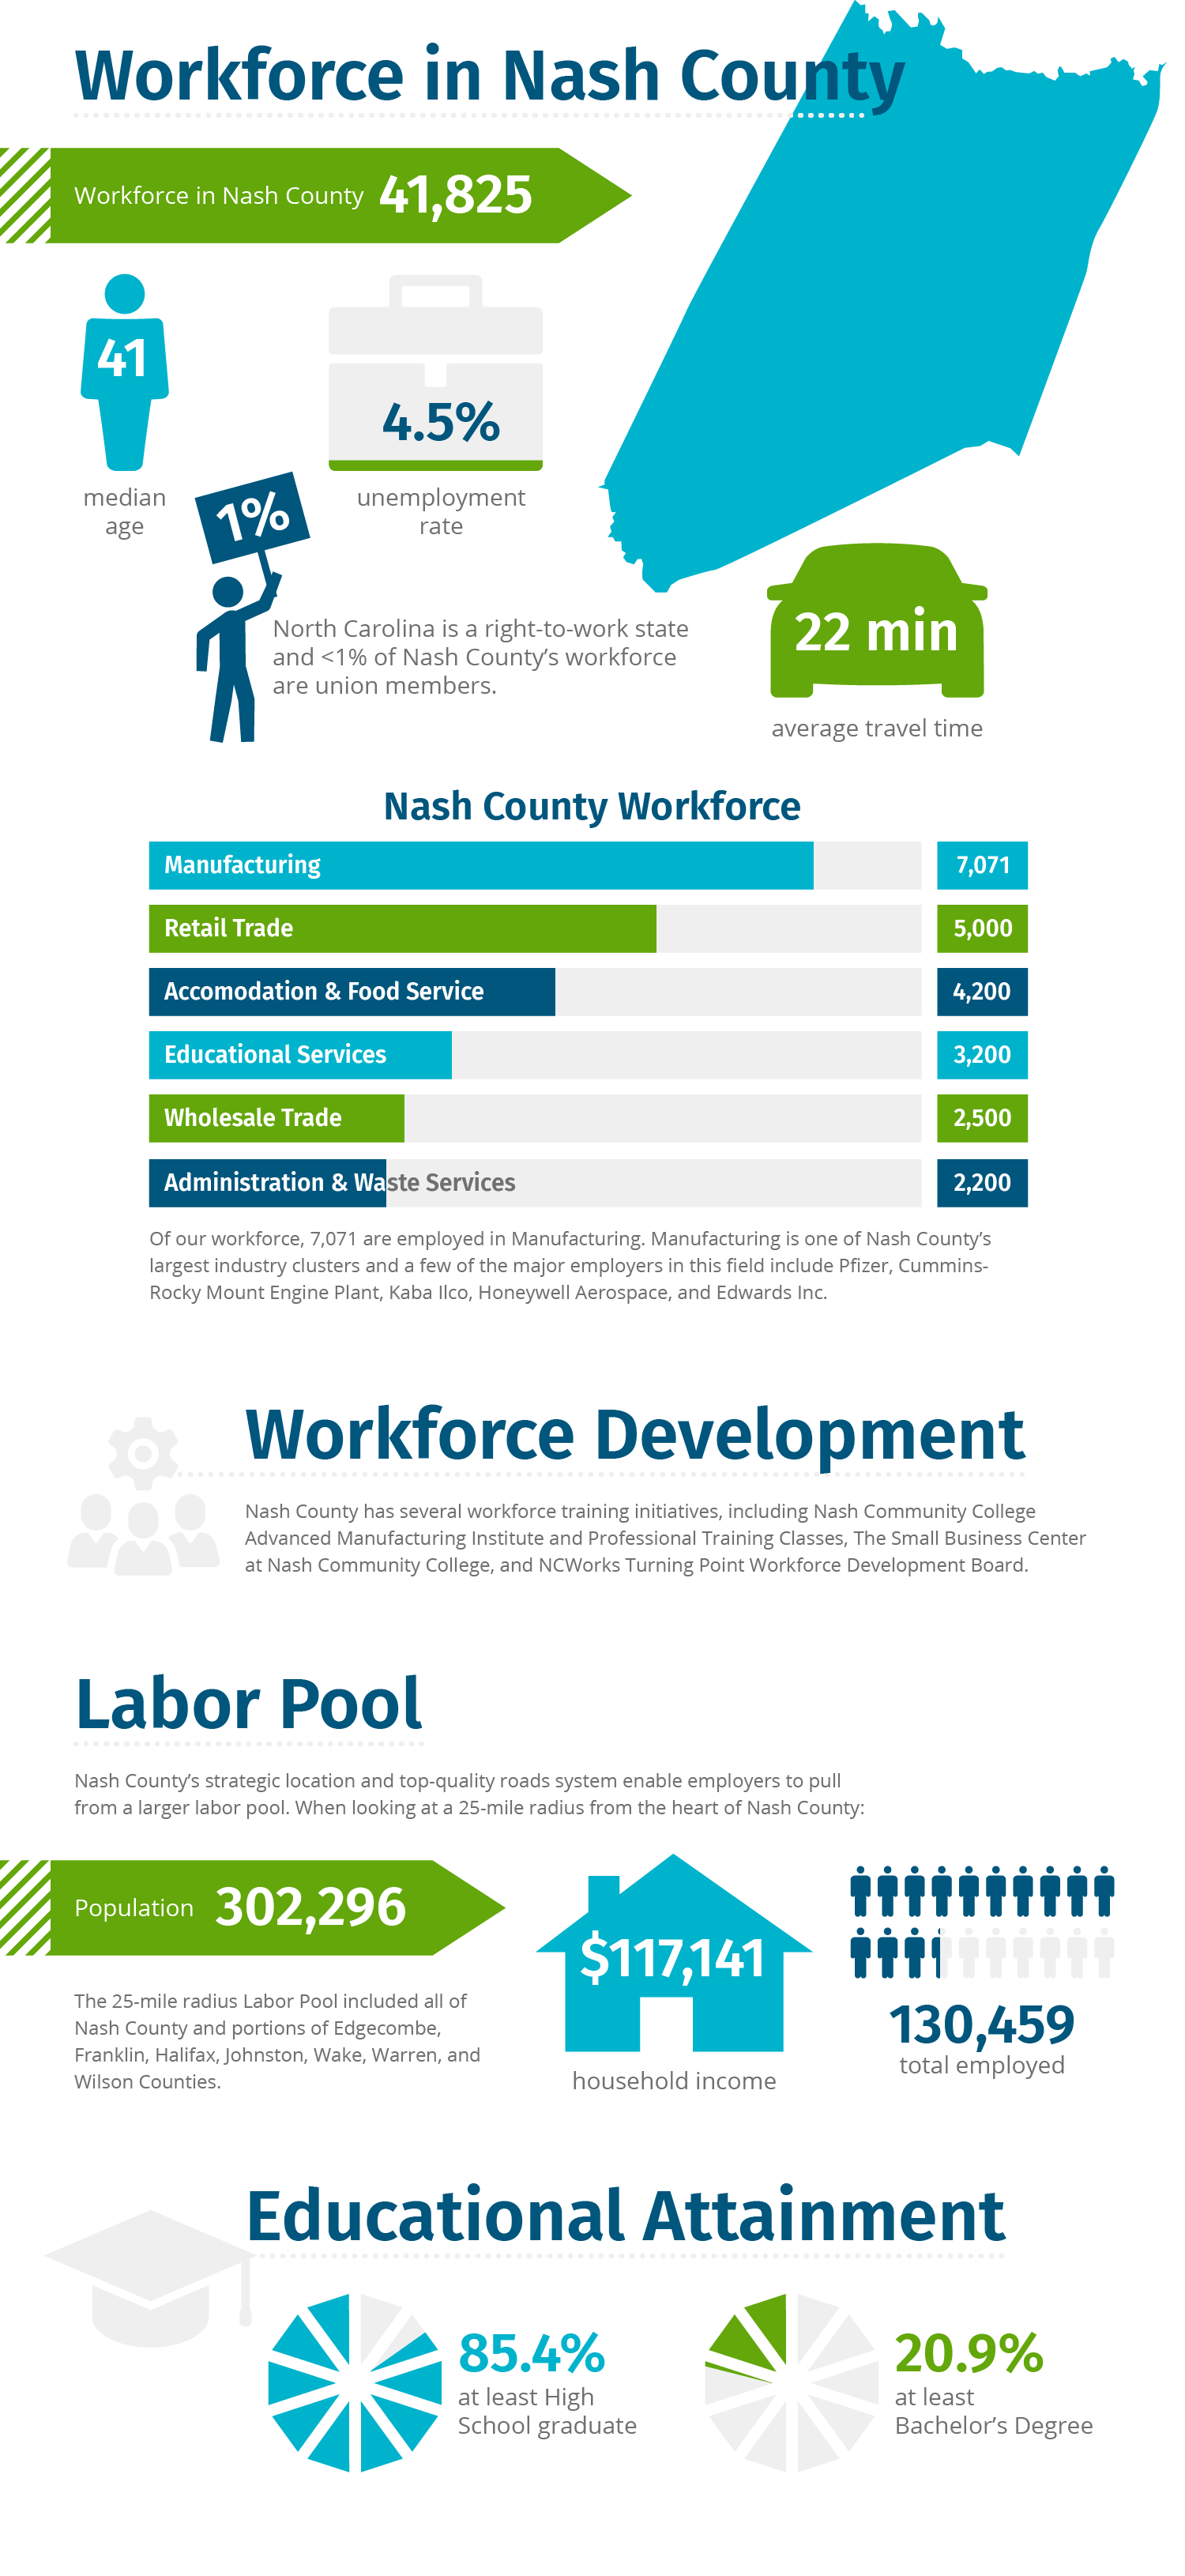 Nash County Workforce Infographic